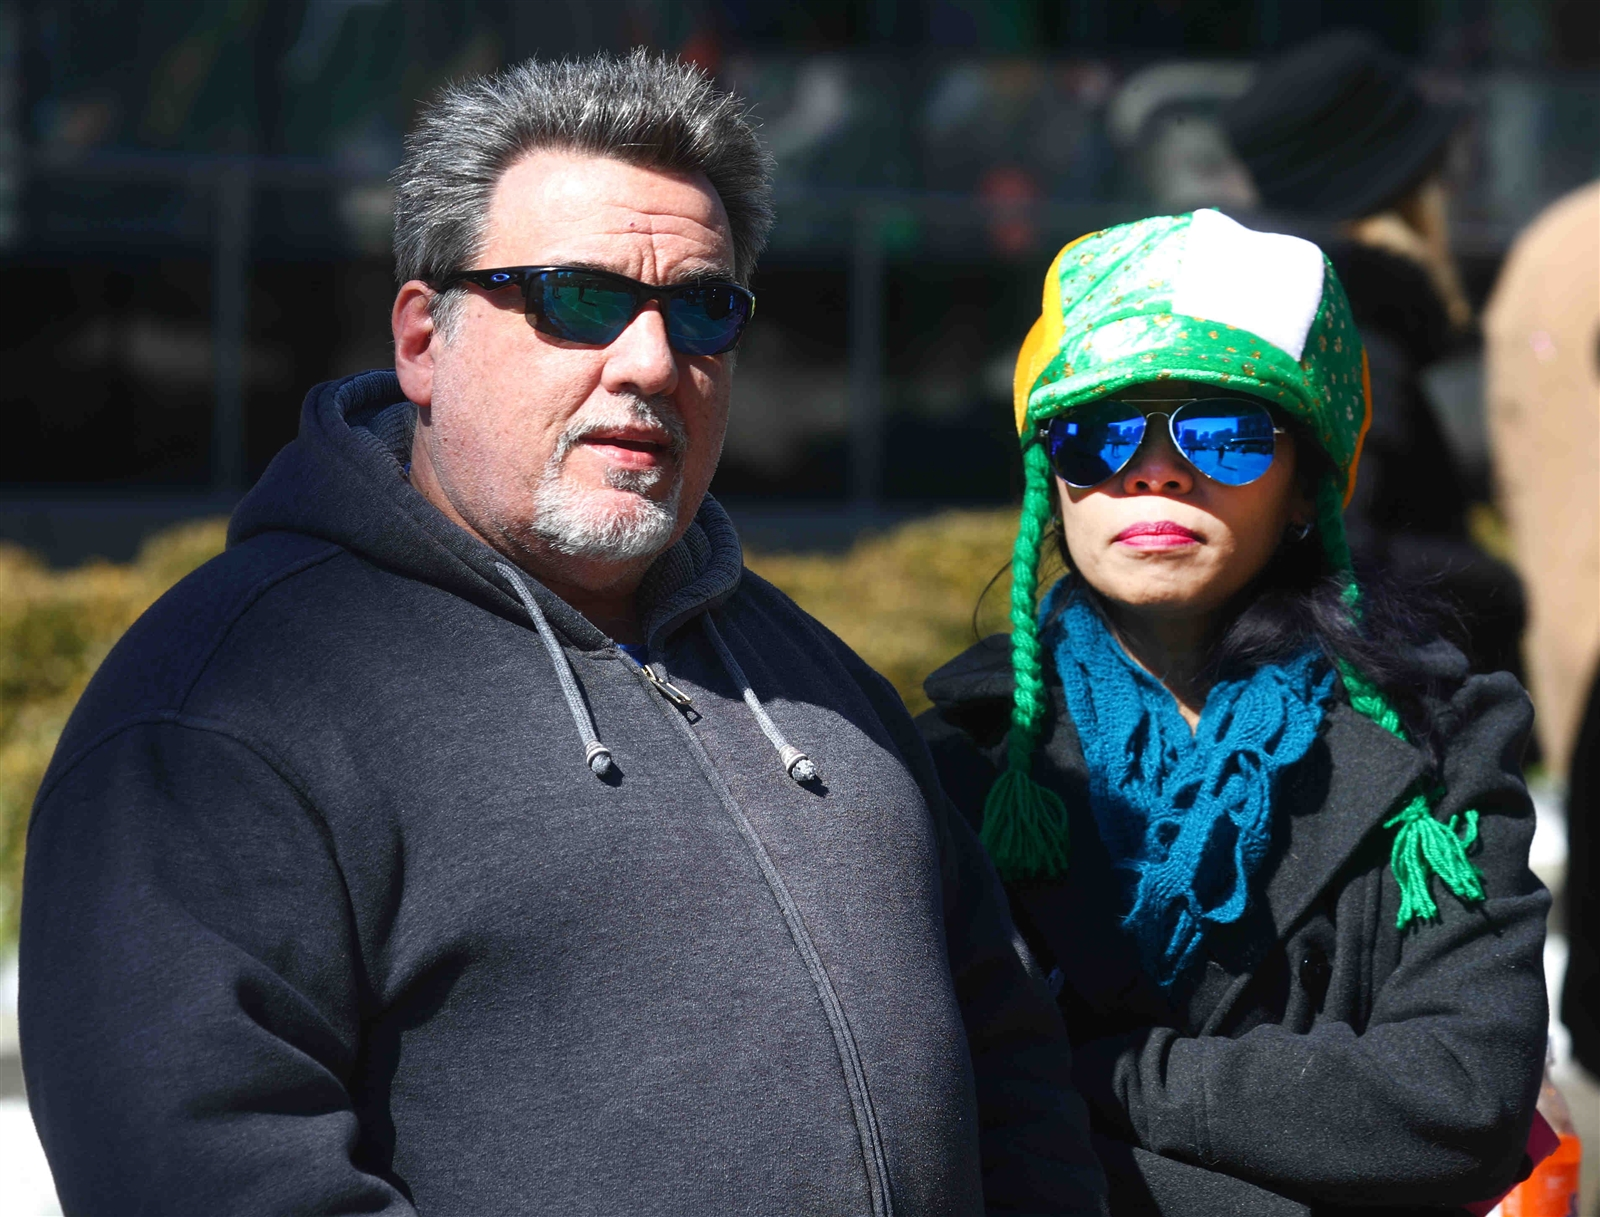 Shane and Ariy Phillips watch the annual St. Patrick's Day parade.